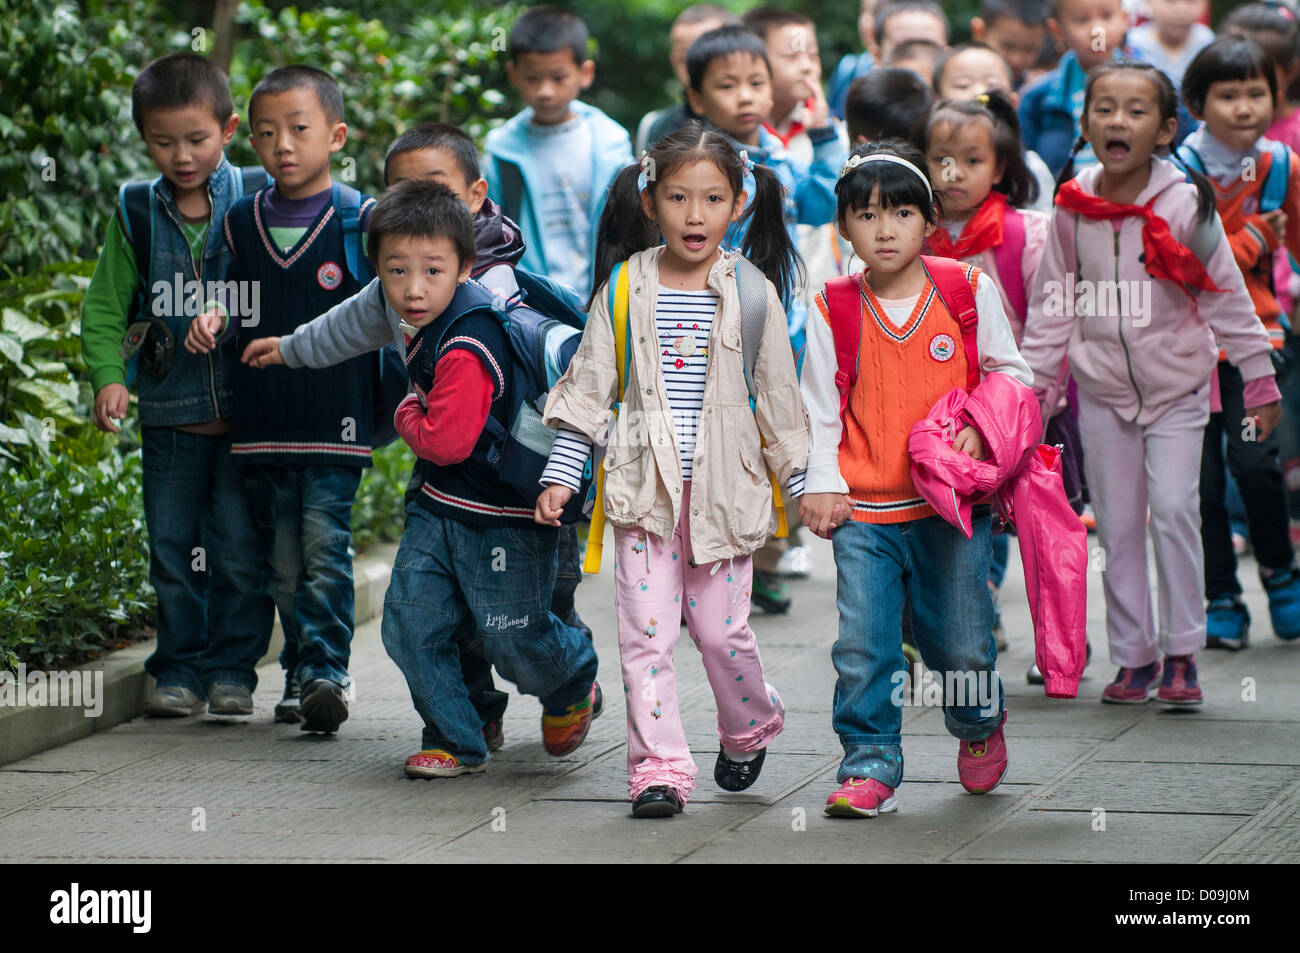 School children during outing in Wenhua Park, Chengdu, Sichuan Province, China - Stock Image